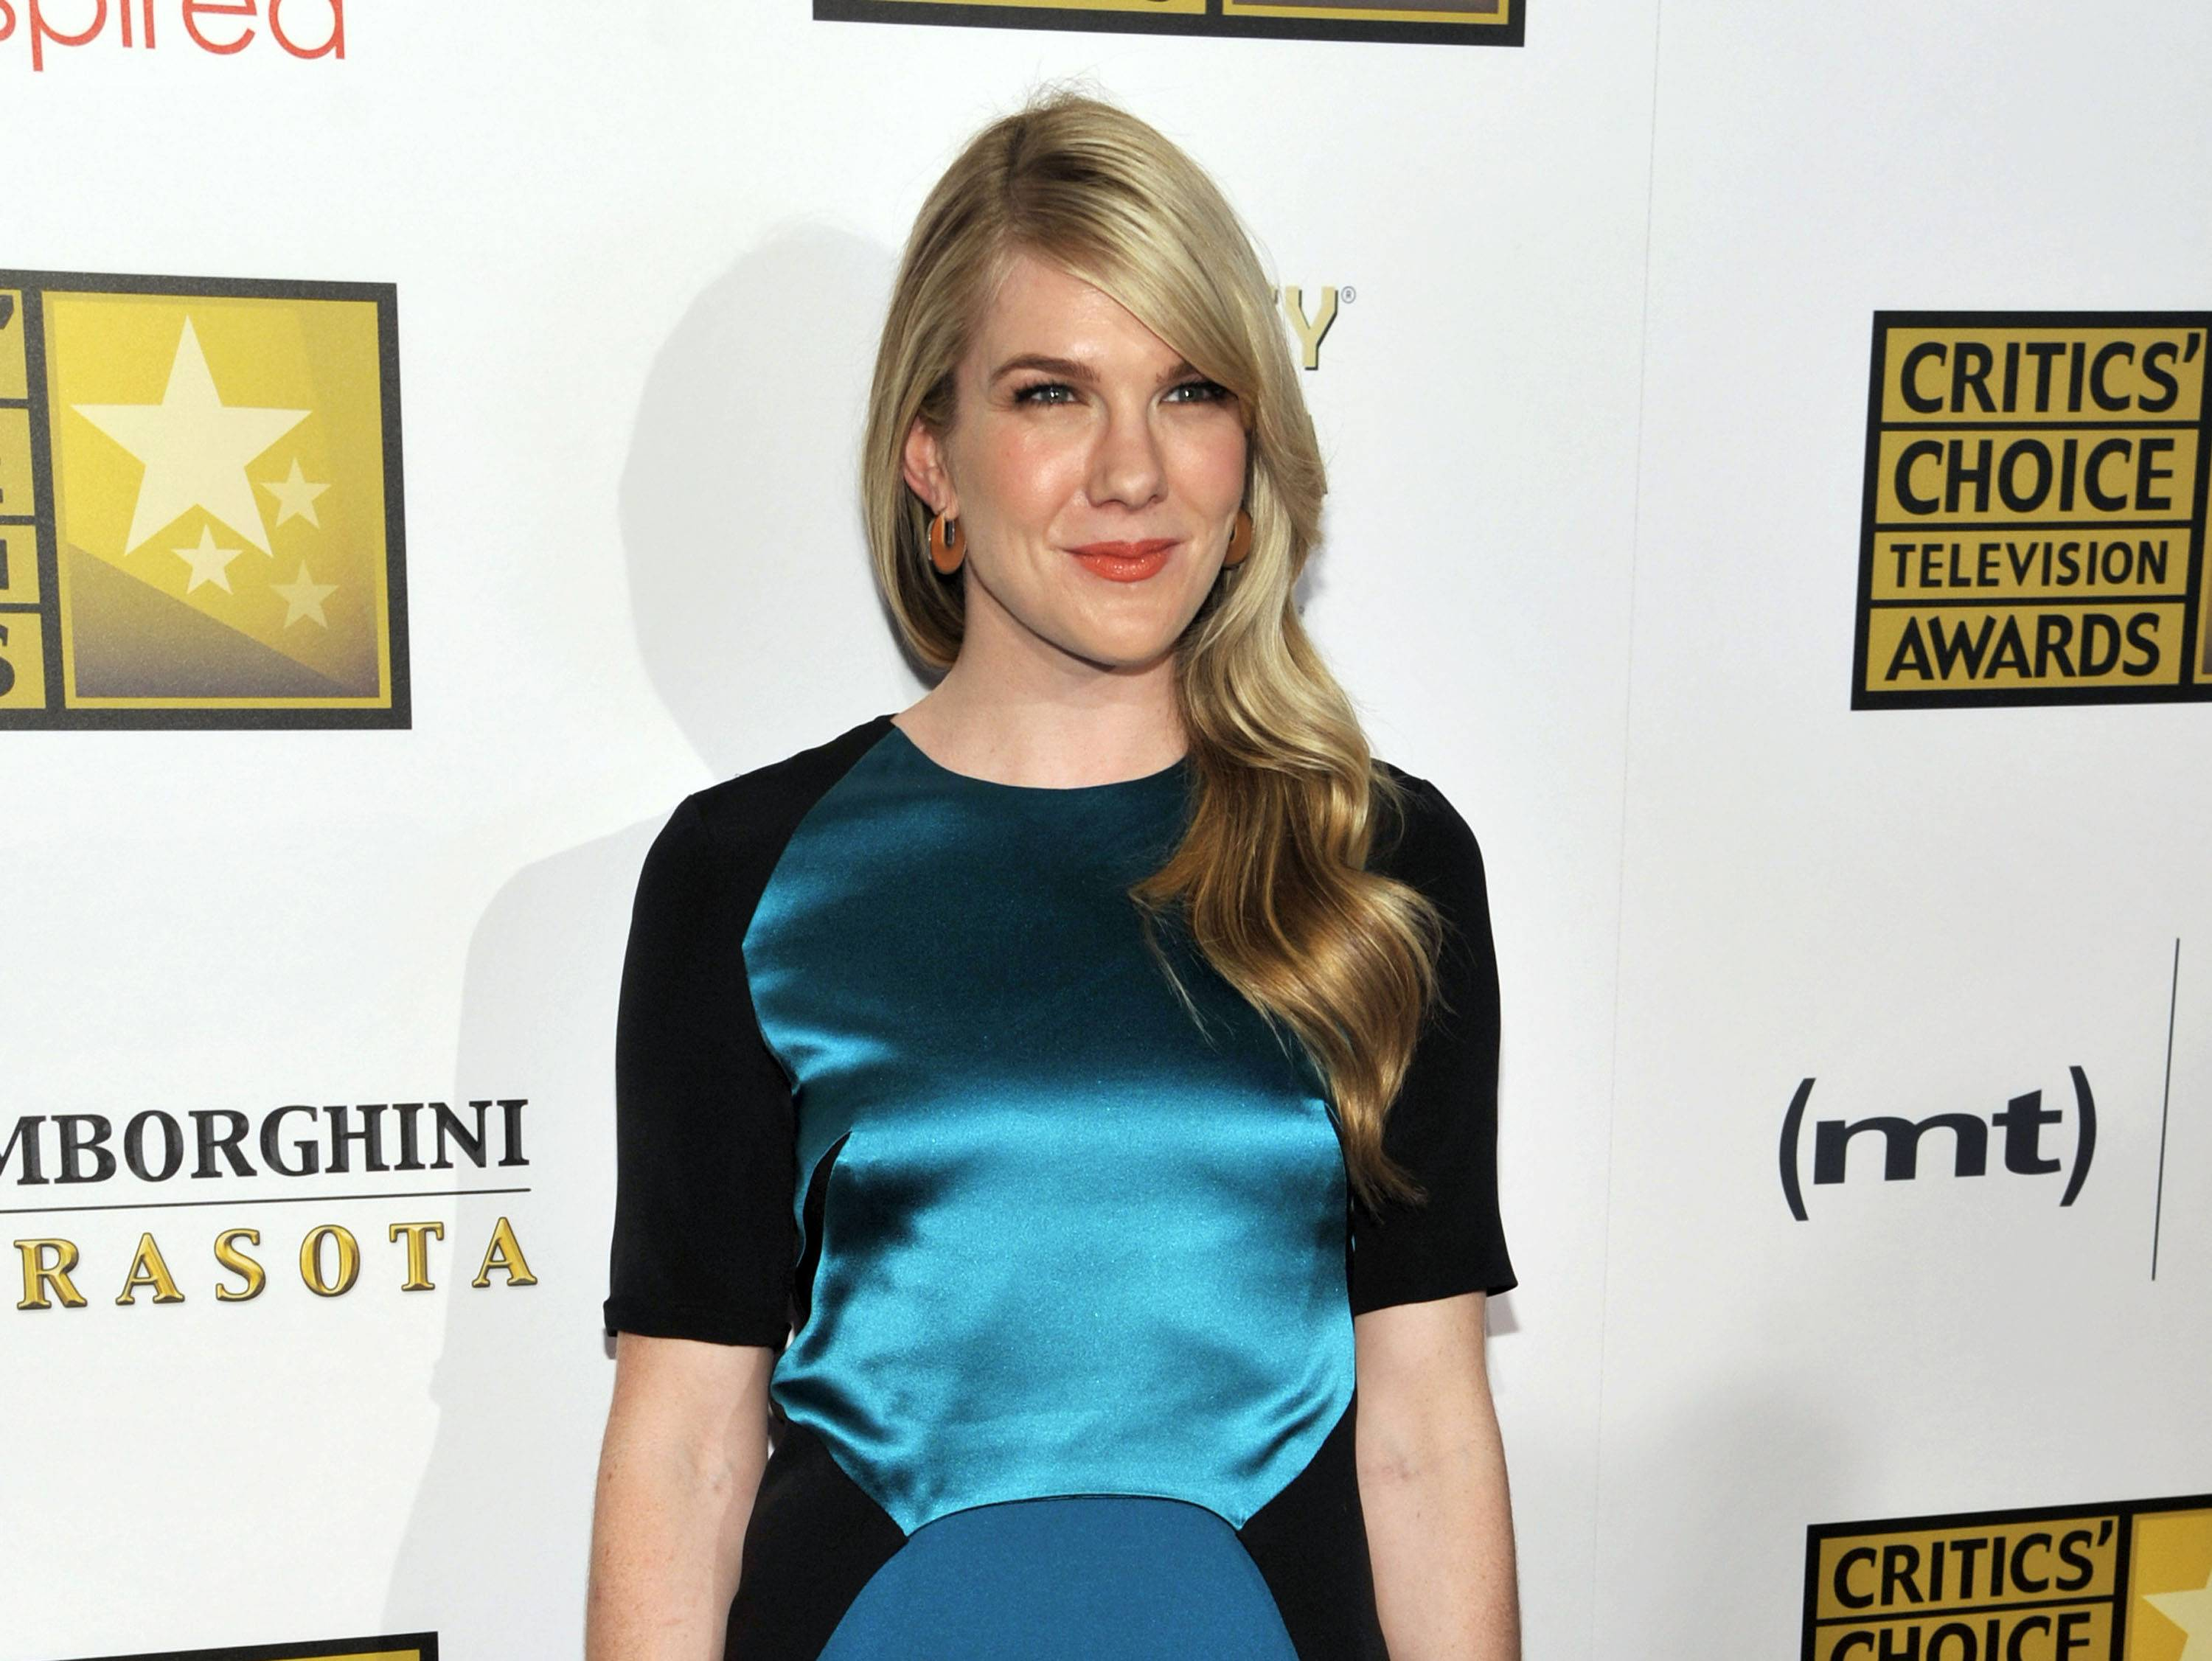 Actress Lily Rabe arrives at the Critics' Choice Television Awards in Beverly Hills, Calif. Rabe, John Lithgow and Hamish Linklater are all returning to Central Park's Delacorte Theatre this summer for another round of Shakespeare in the Park.